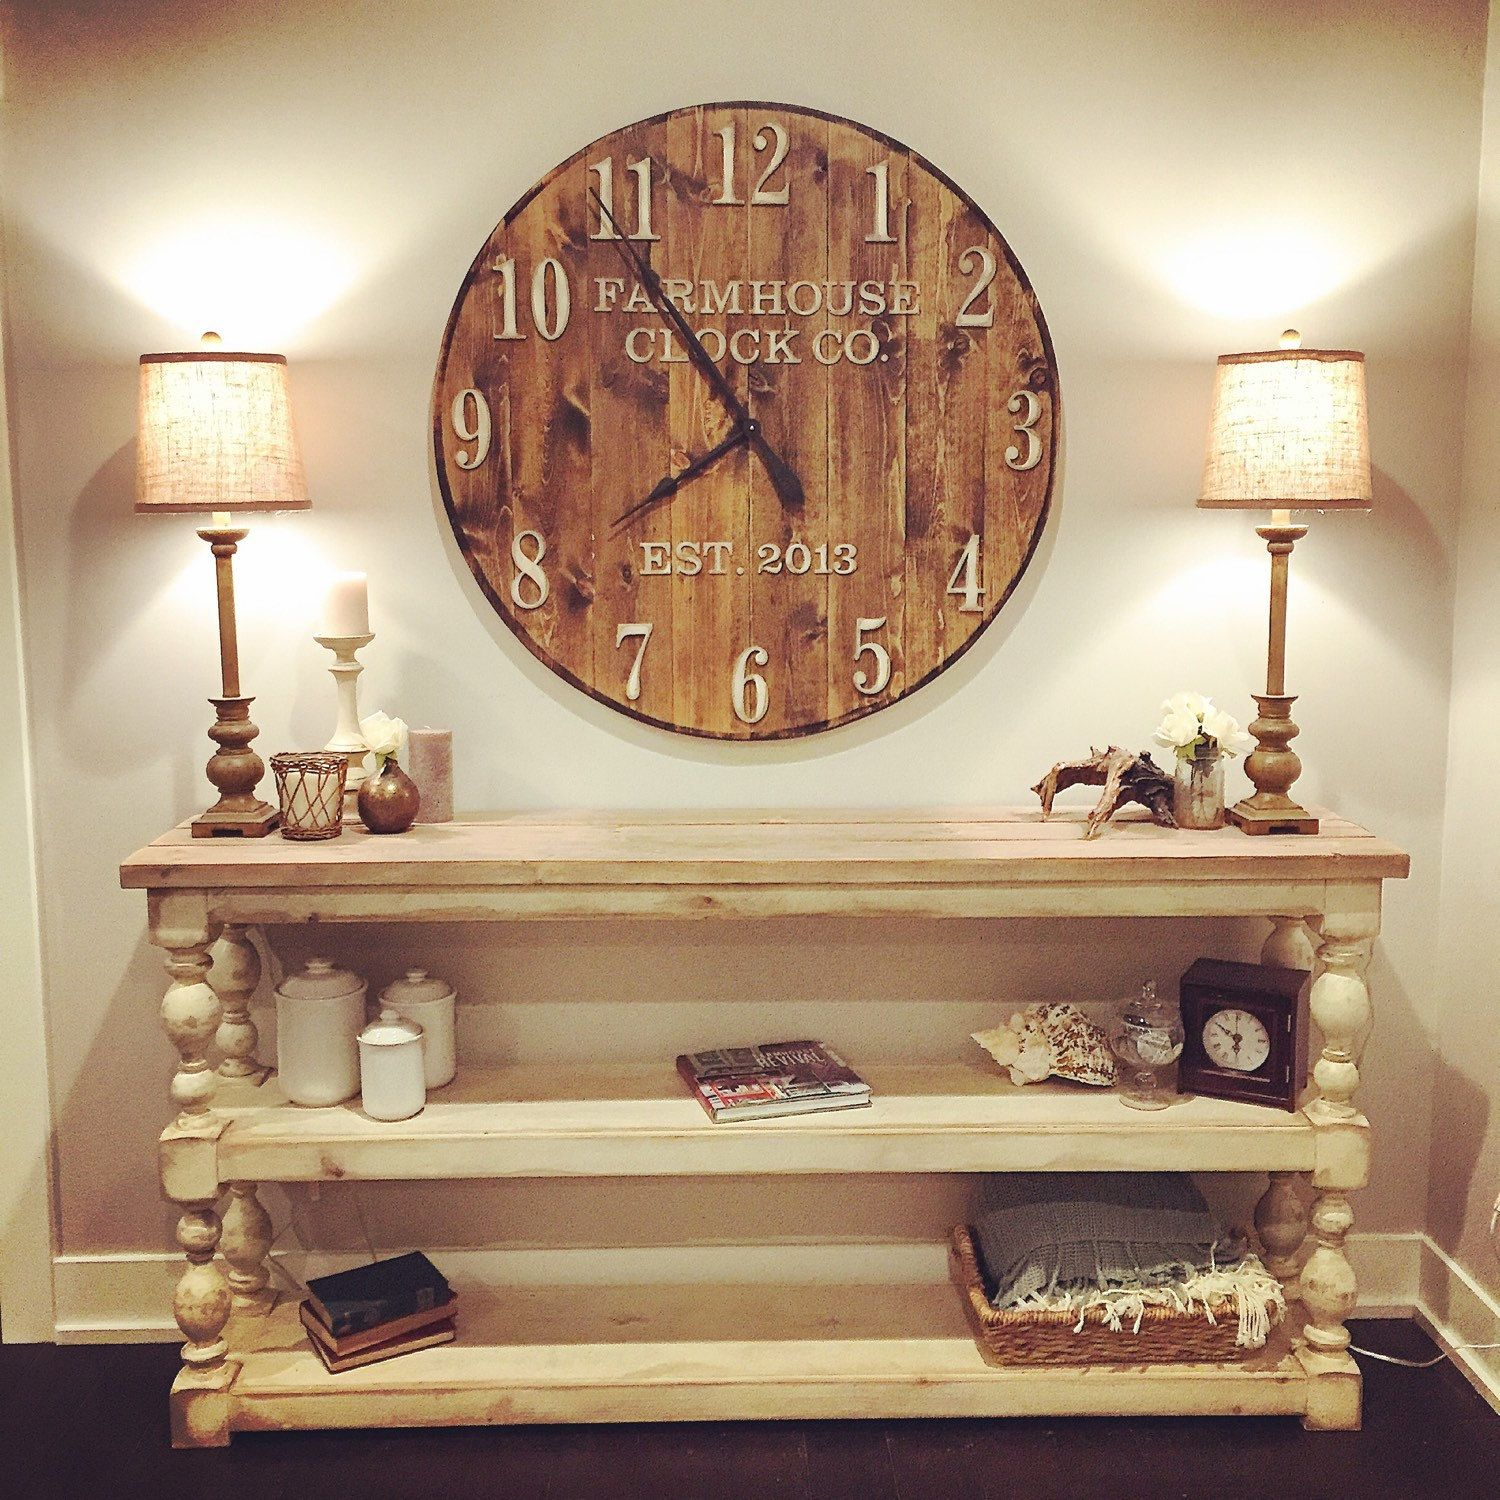 Extra Large Decorative Wall Clocks farmhouse clock co. standard numeral wooden wall clock | farmhouse